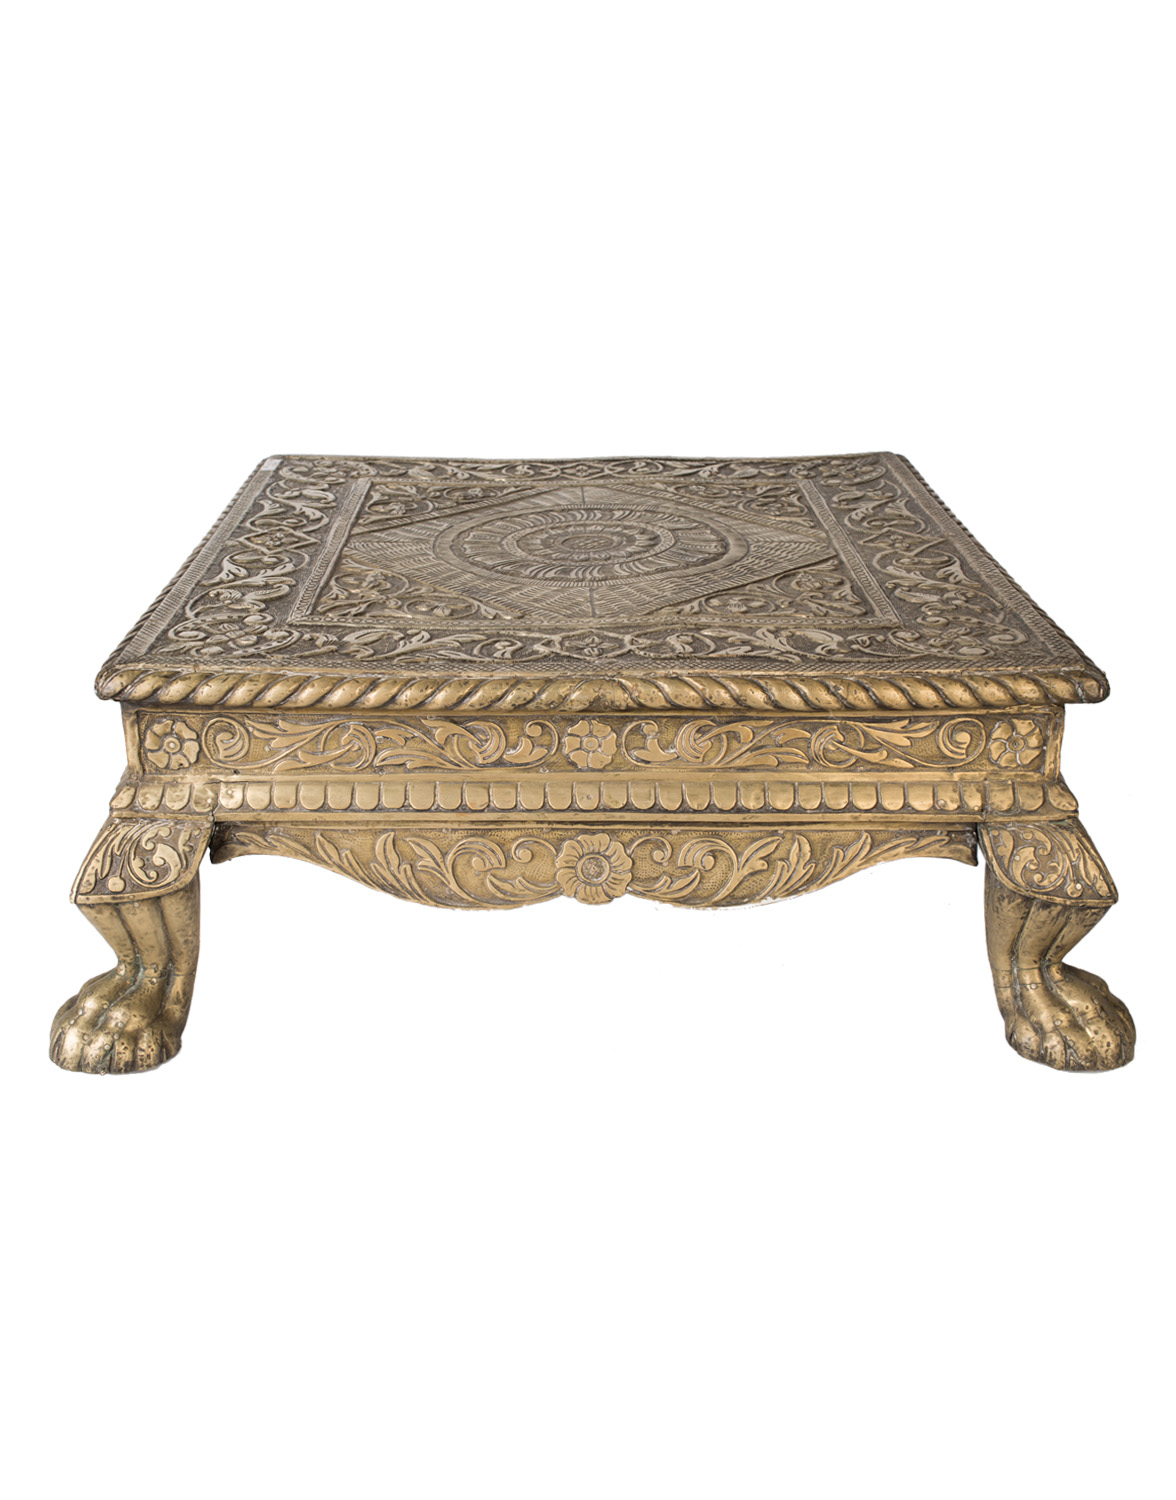 Small Chowki side table in wood and sheet metal